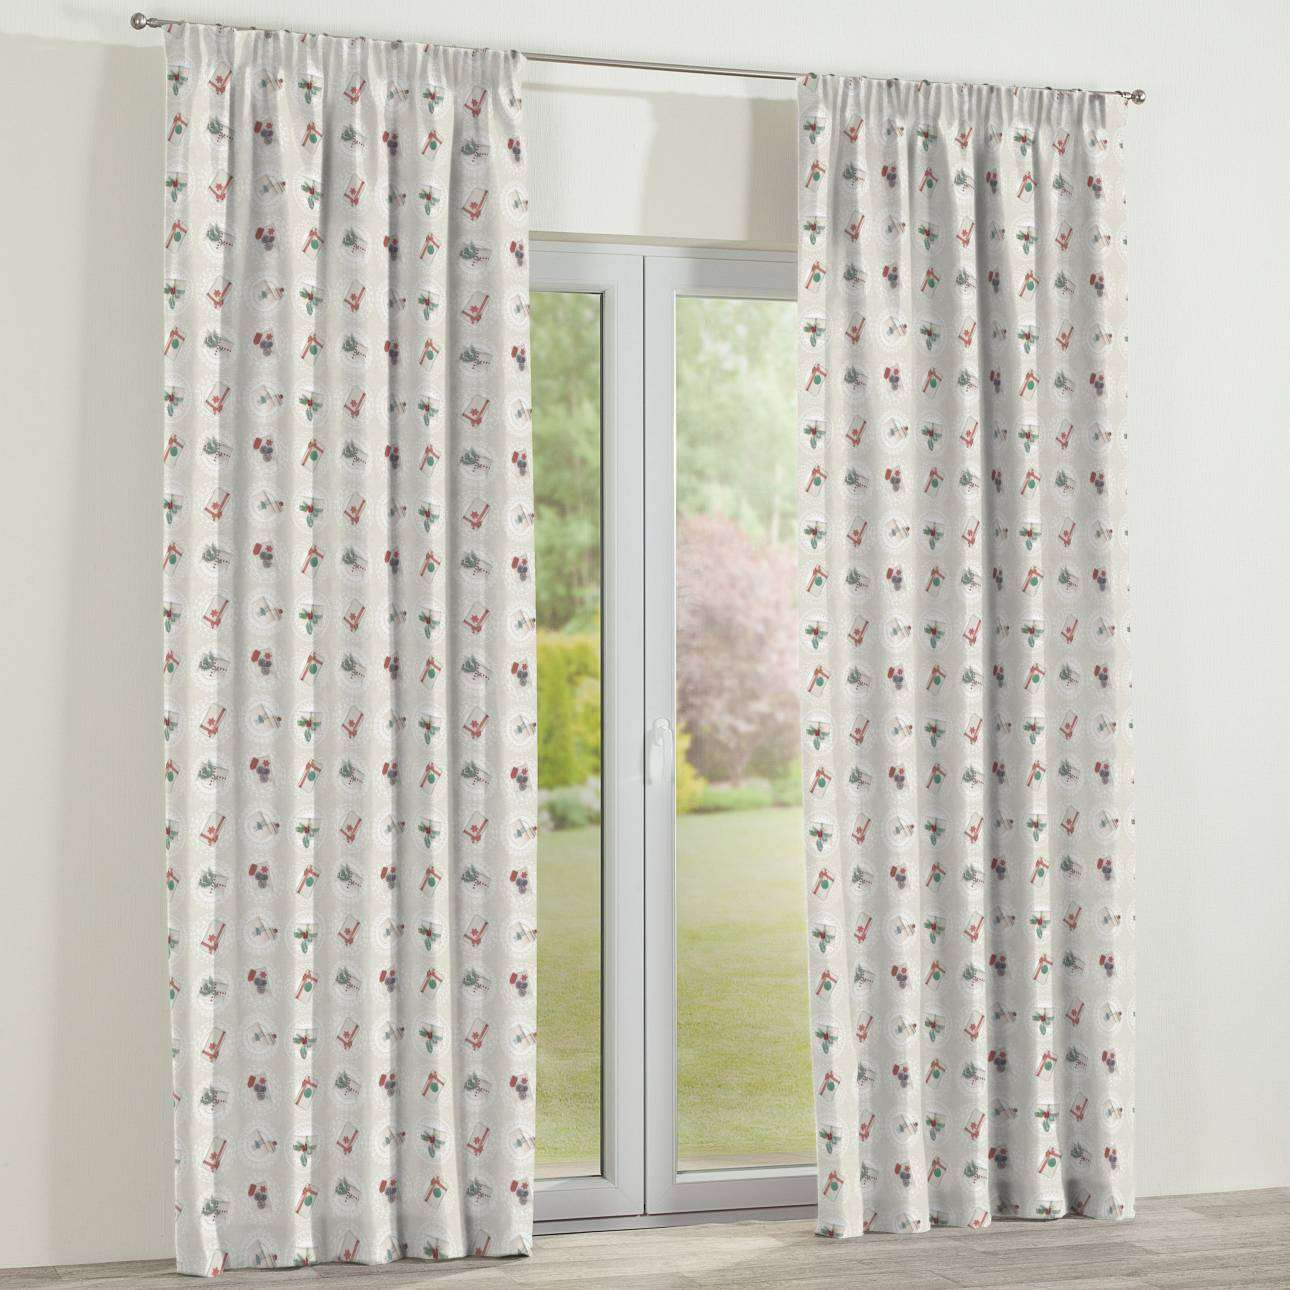 Pencil pleat curtains 130 x 260 cm (51 x 102 inch) in collection Christmas , fabric: 629-30